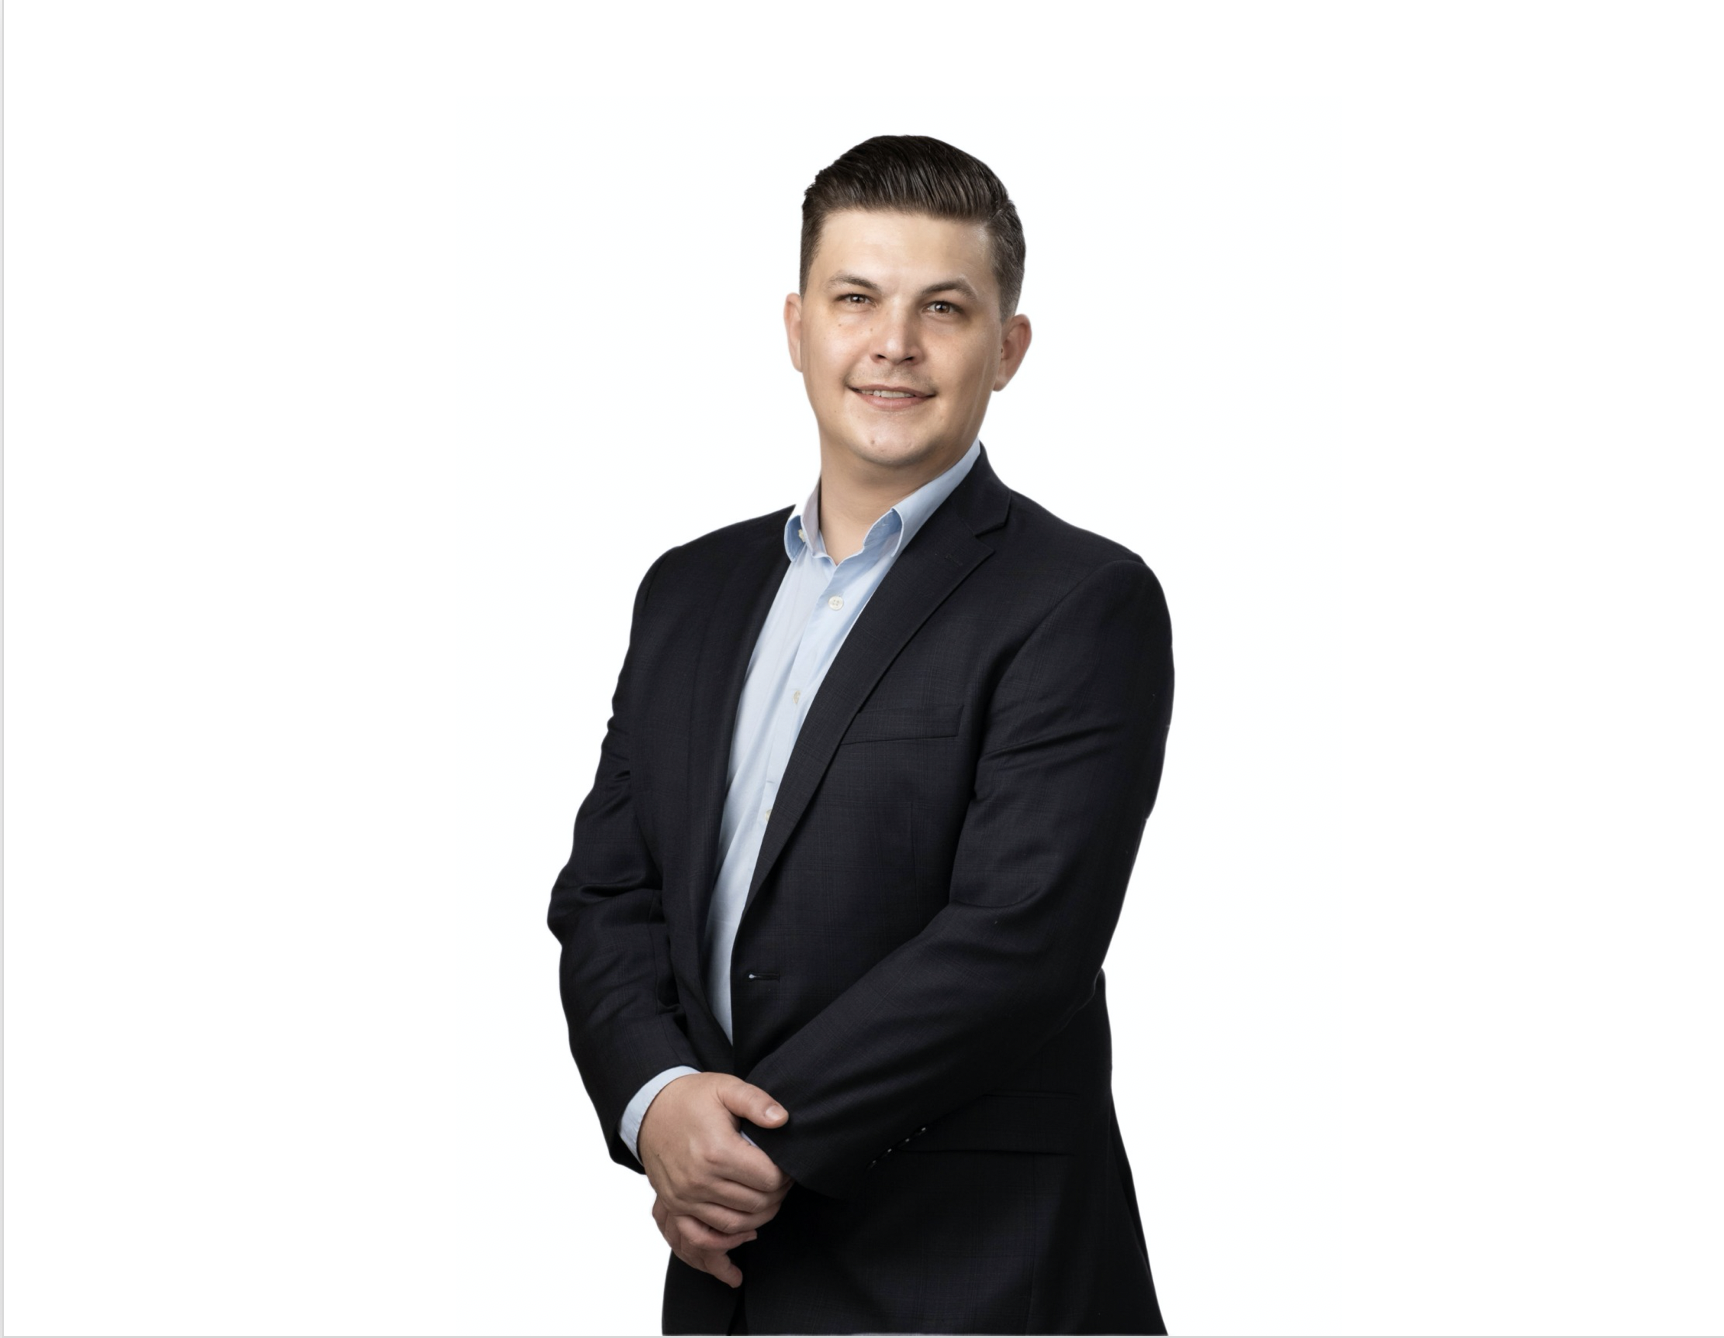 Sing Fuels appoints Andreas Jensen as Bunker Trader for Houston office